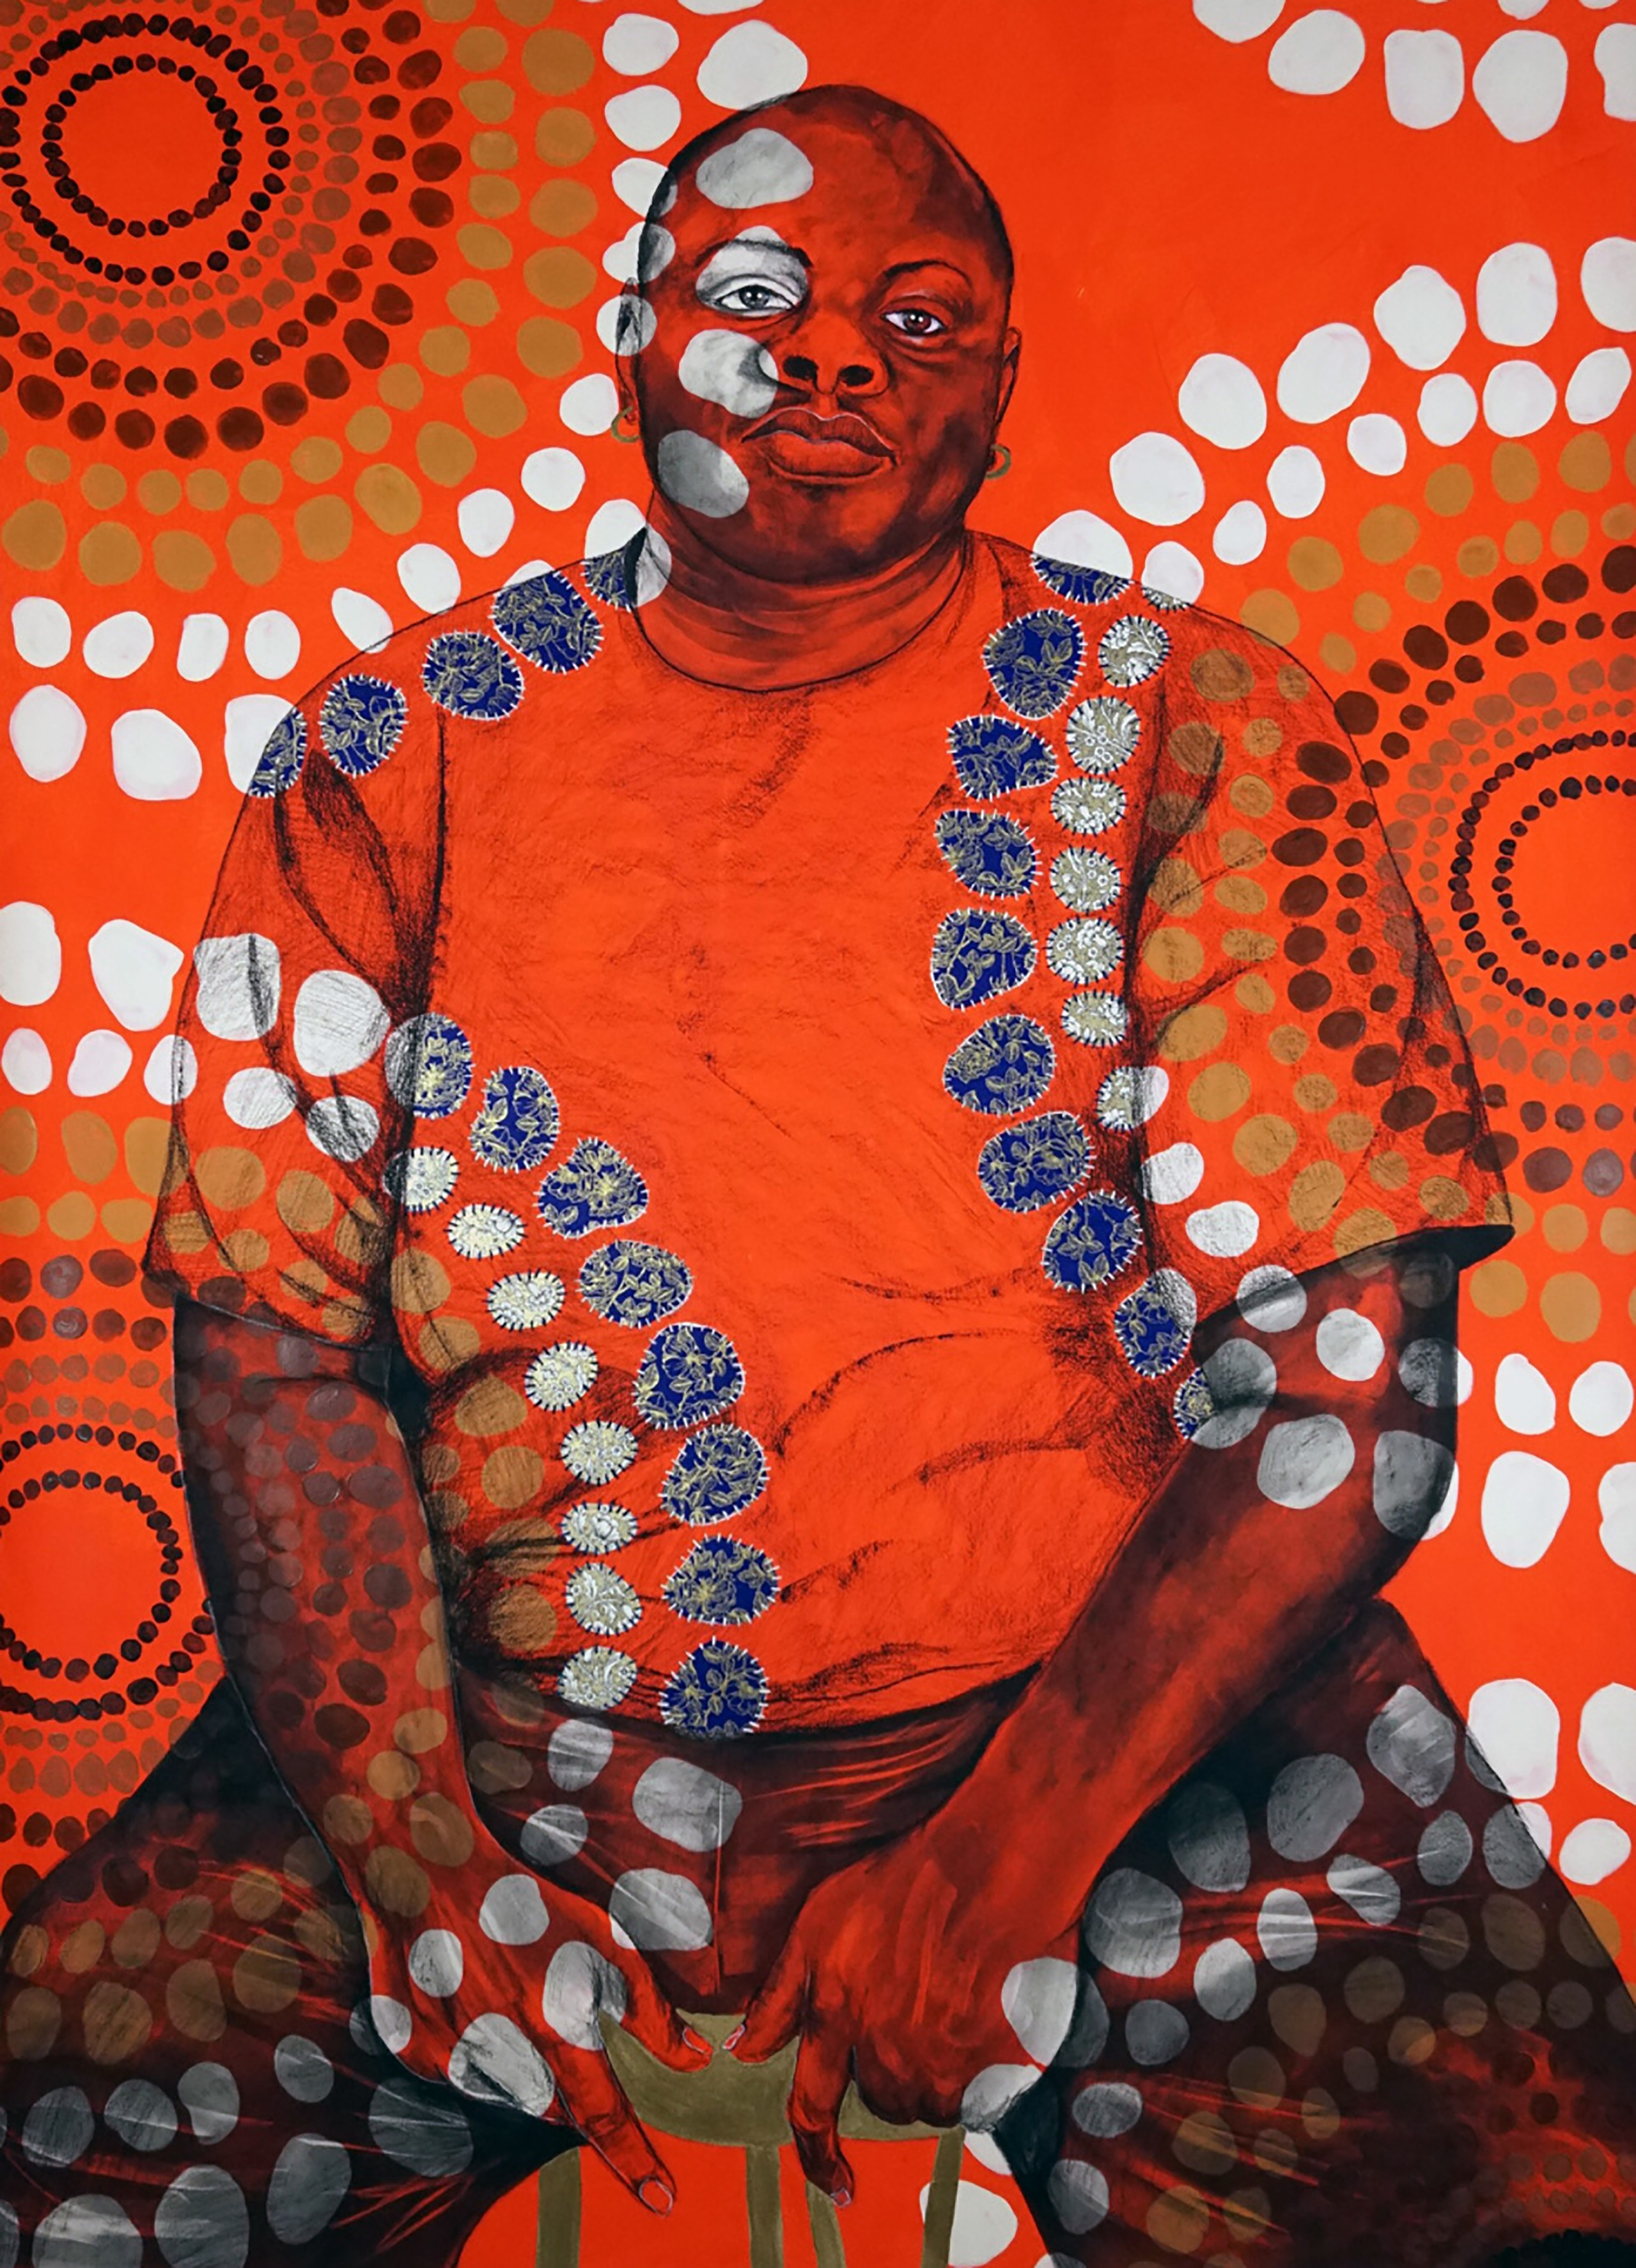 Mixed-media work of a seated dark skin person staring confidently at the viewer; an overlay of bright orange and circular patterns of white, blue, and brown circles covers the person and background.